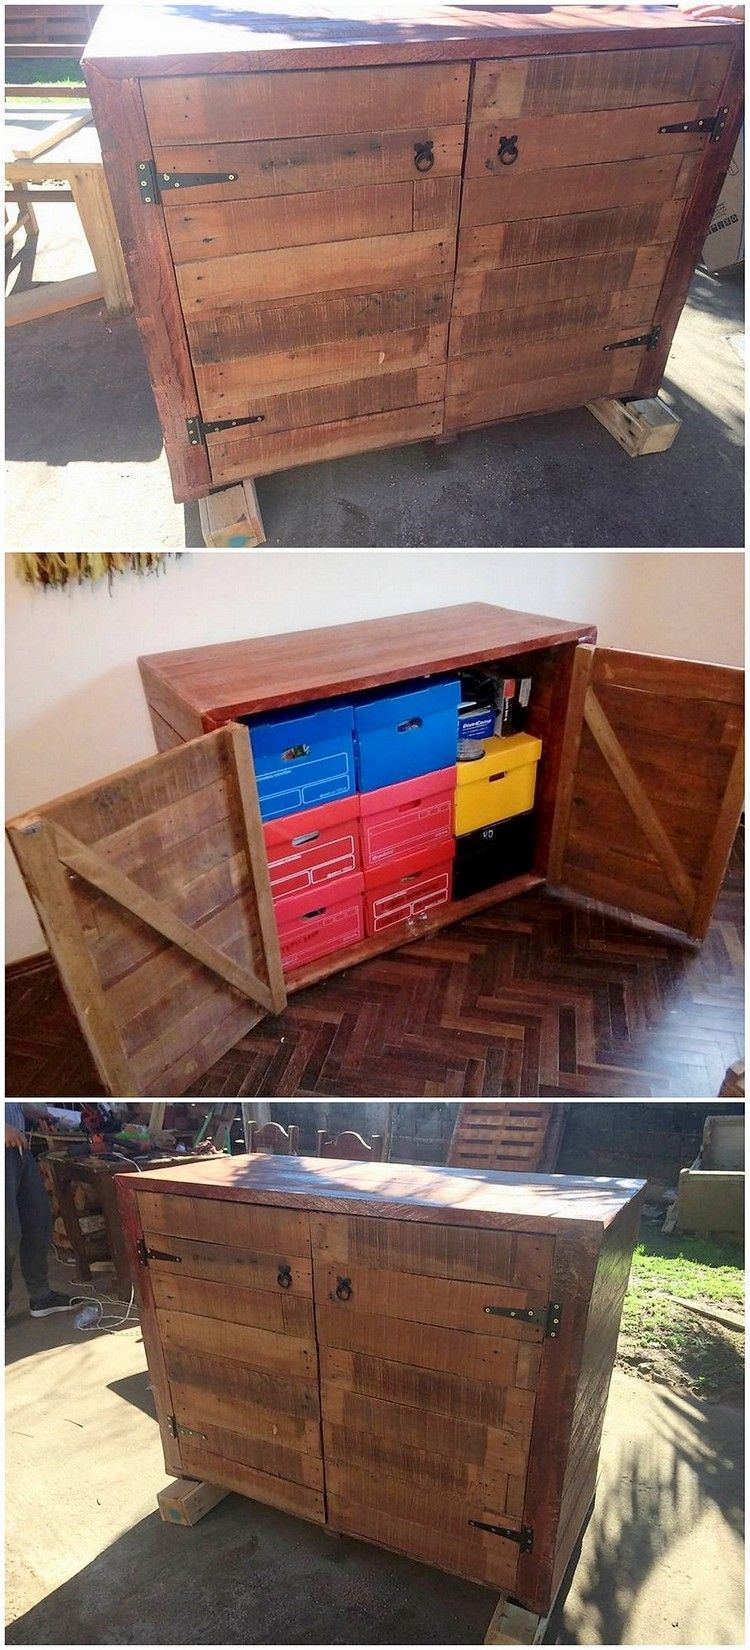 shipping pallet furniture ideas. Mind Blowing Creations With Recycled Shipping Pallets Pallet Furniture Ideas R